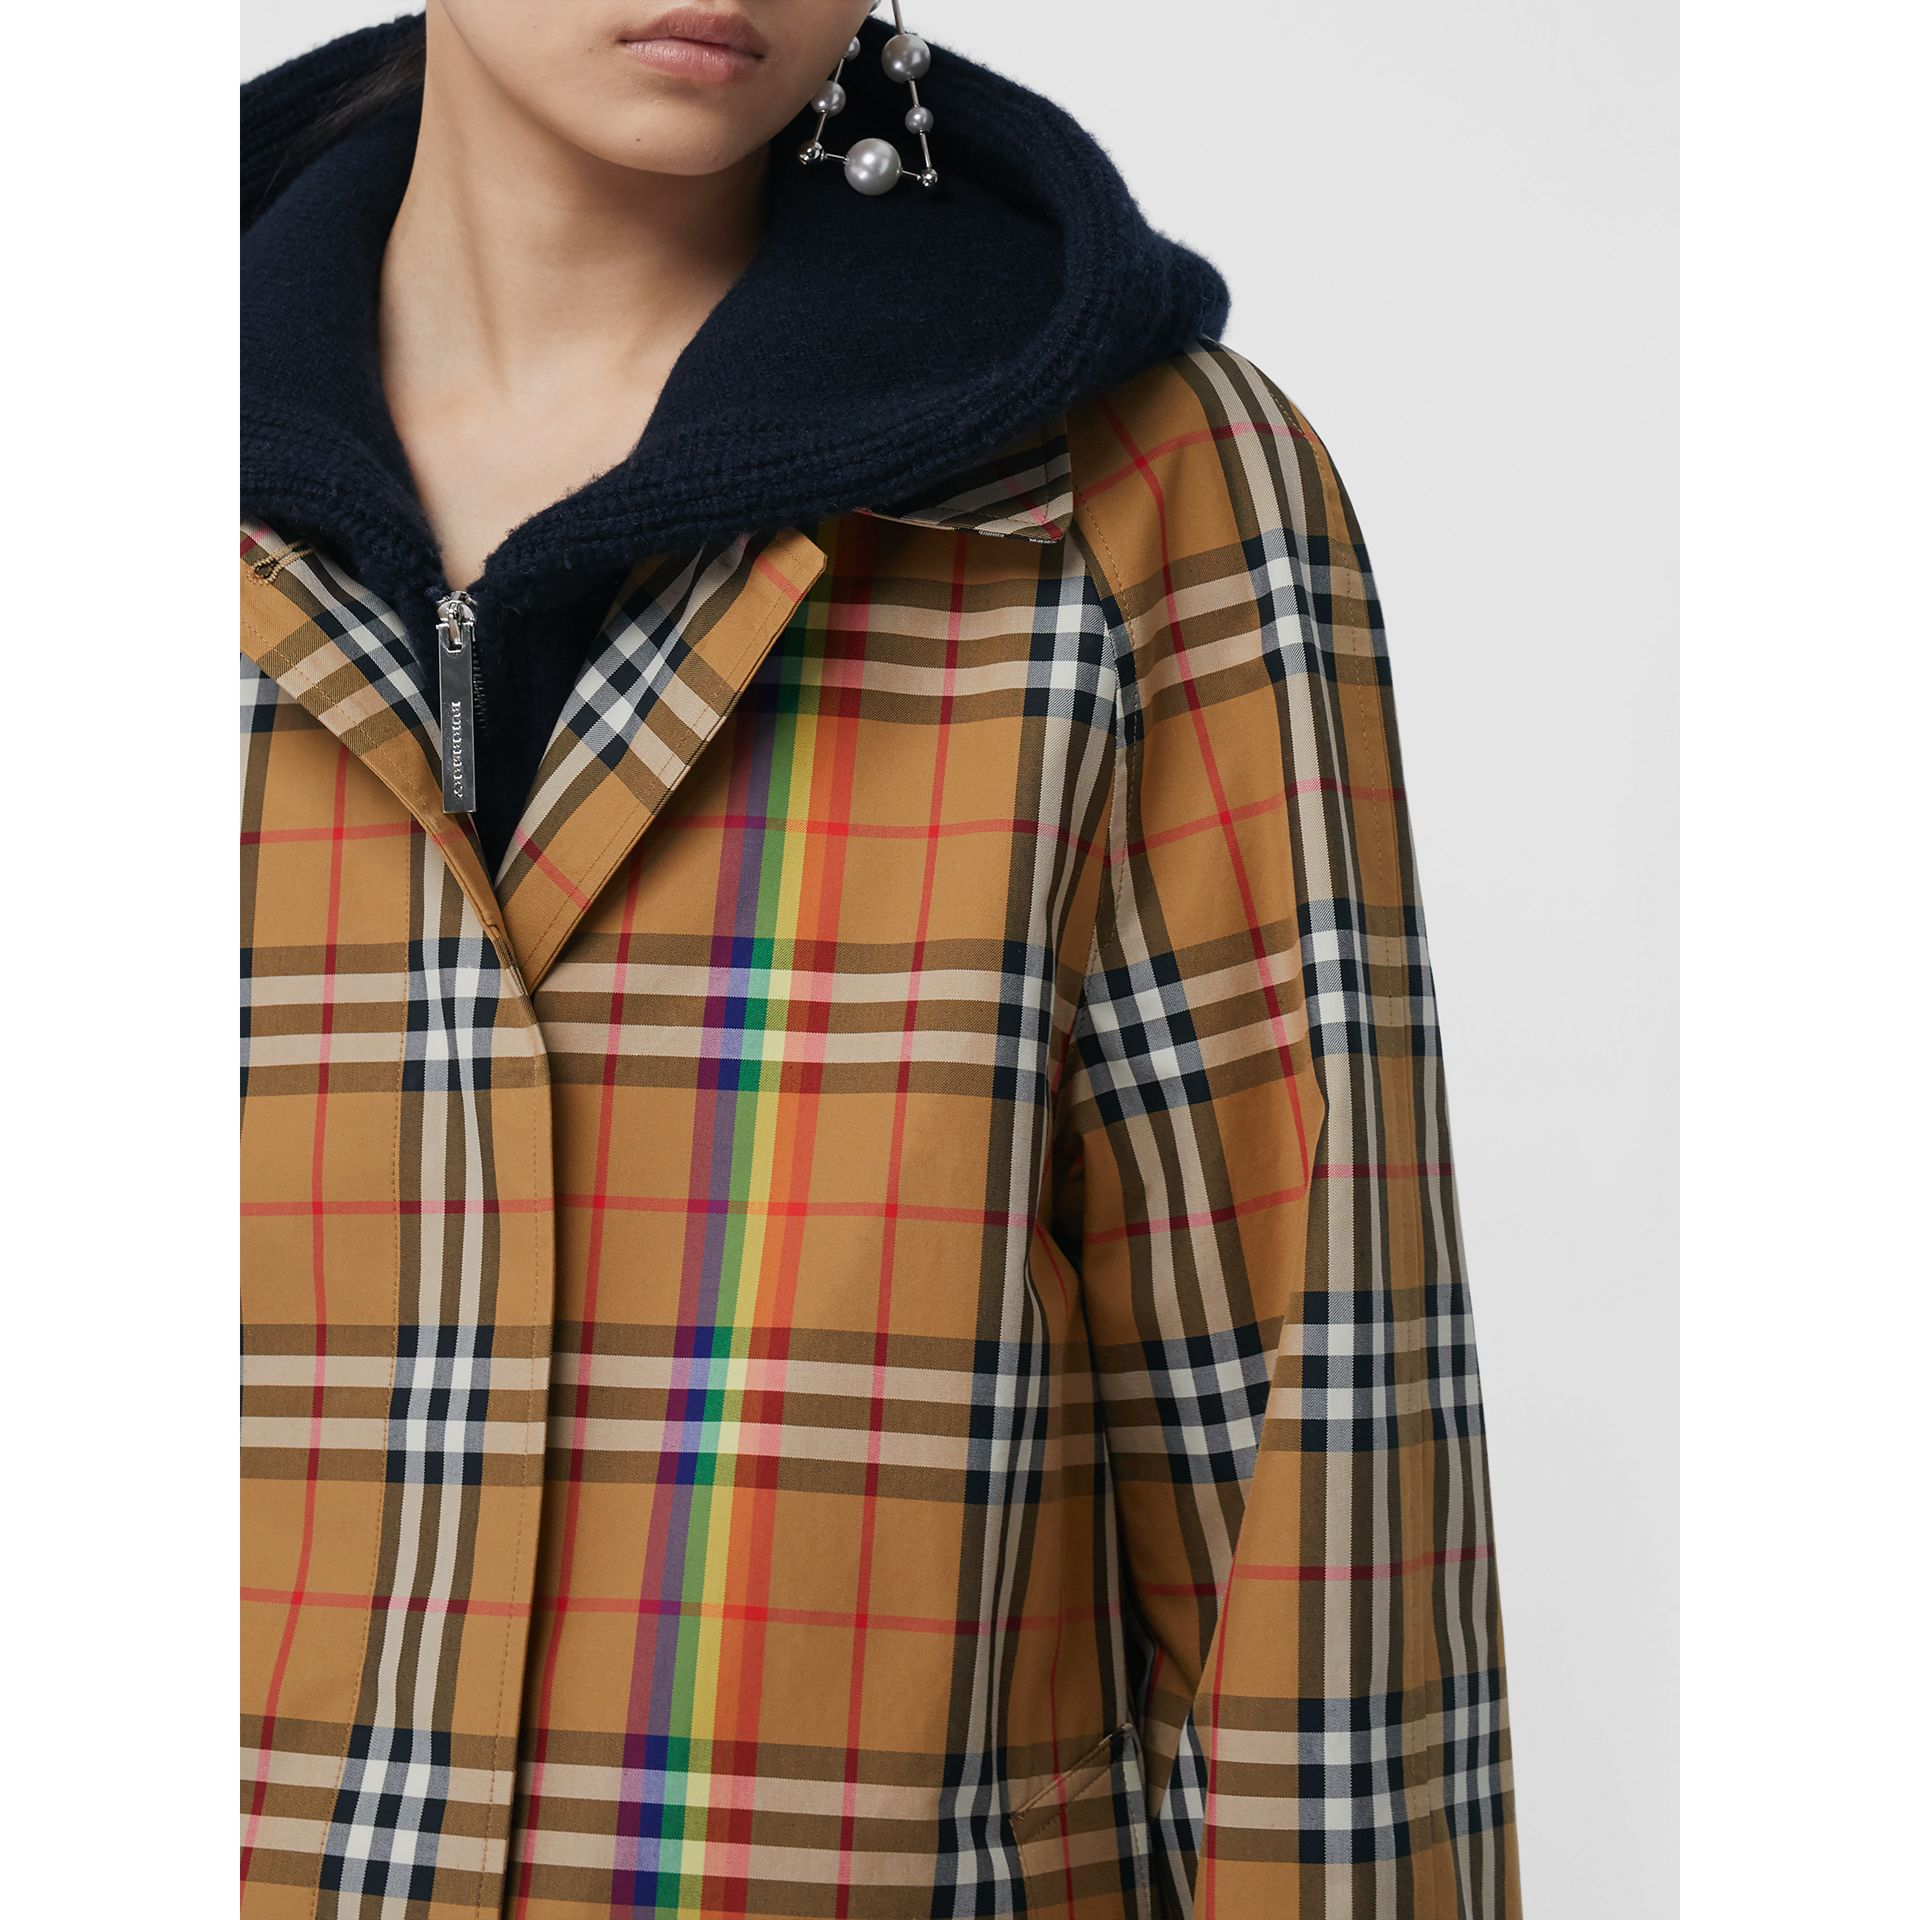 Rainbow Vintage Check Car Coat in Multicolour - Women | Burberry - gallery image 4